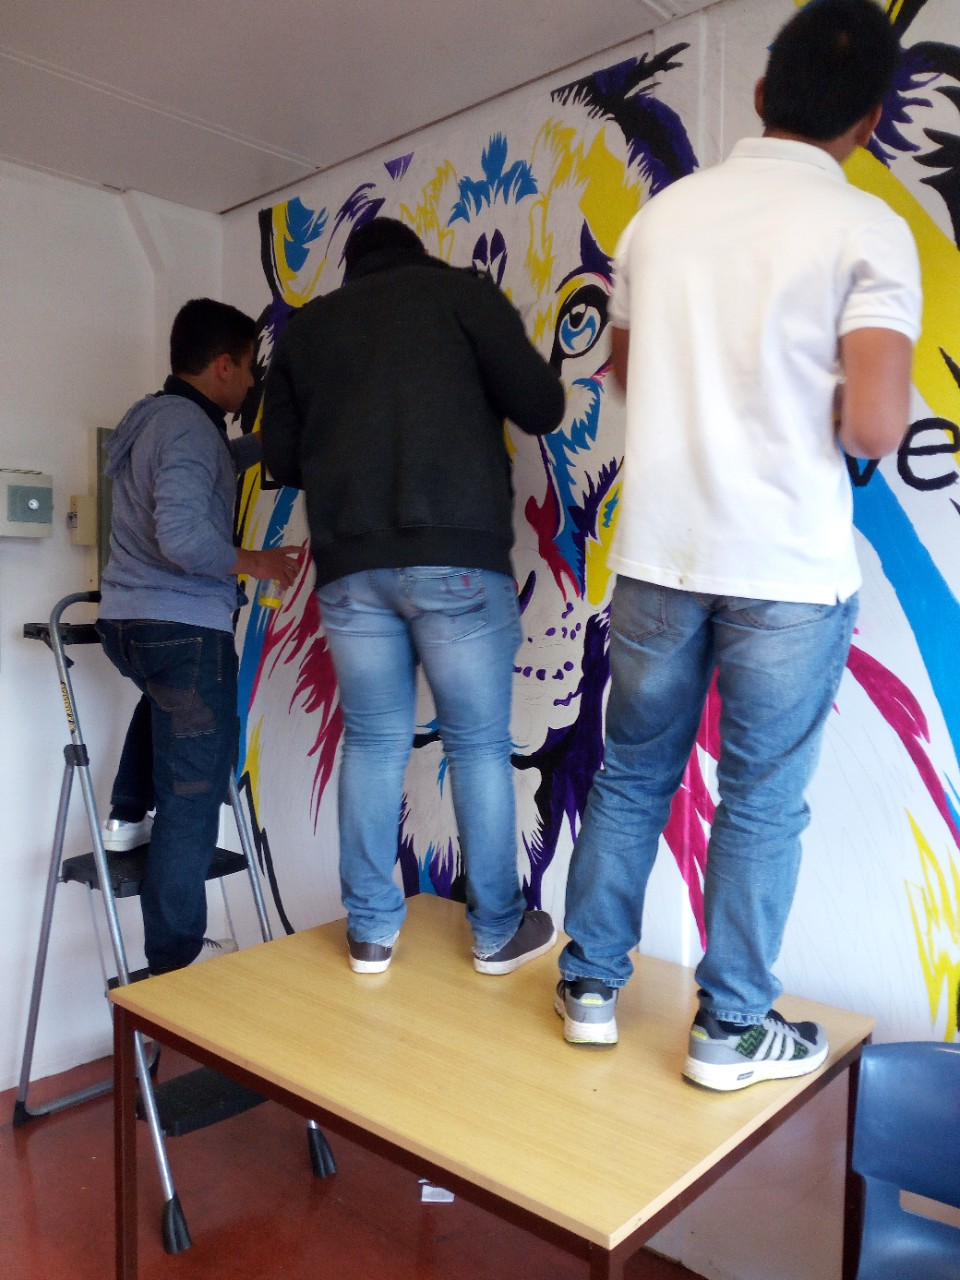 Three students painting a vibrant mural on the wall.